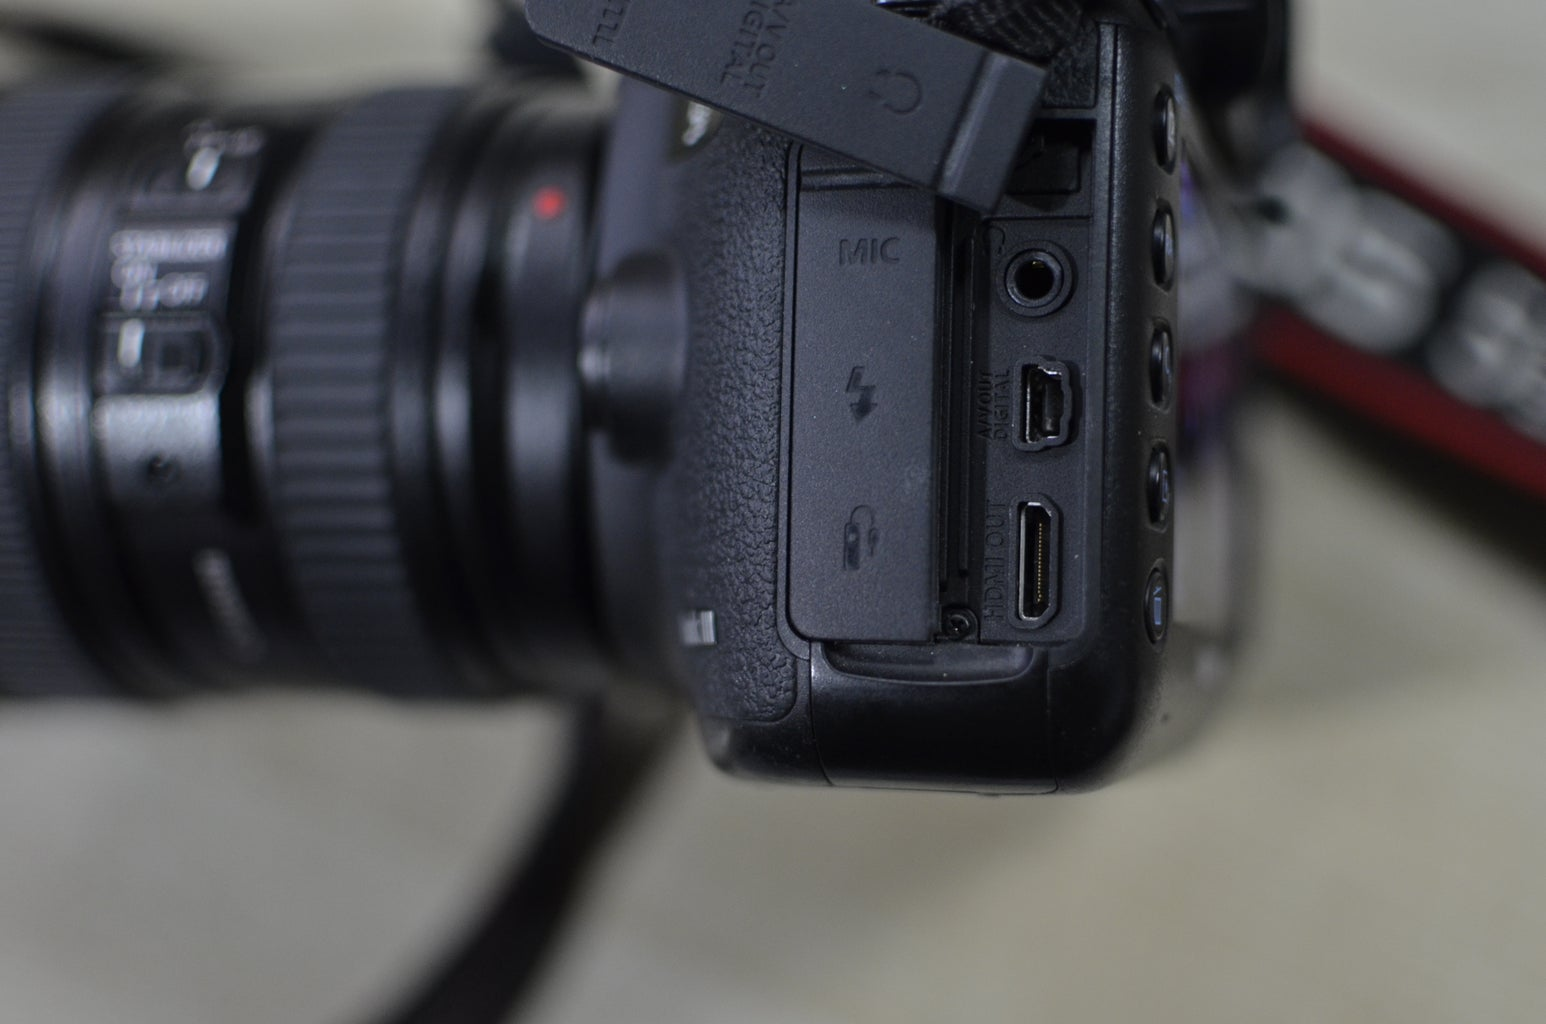 Connect It to Your Camera With HDMI Cable